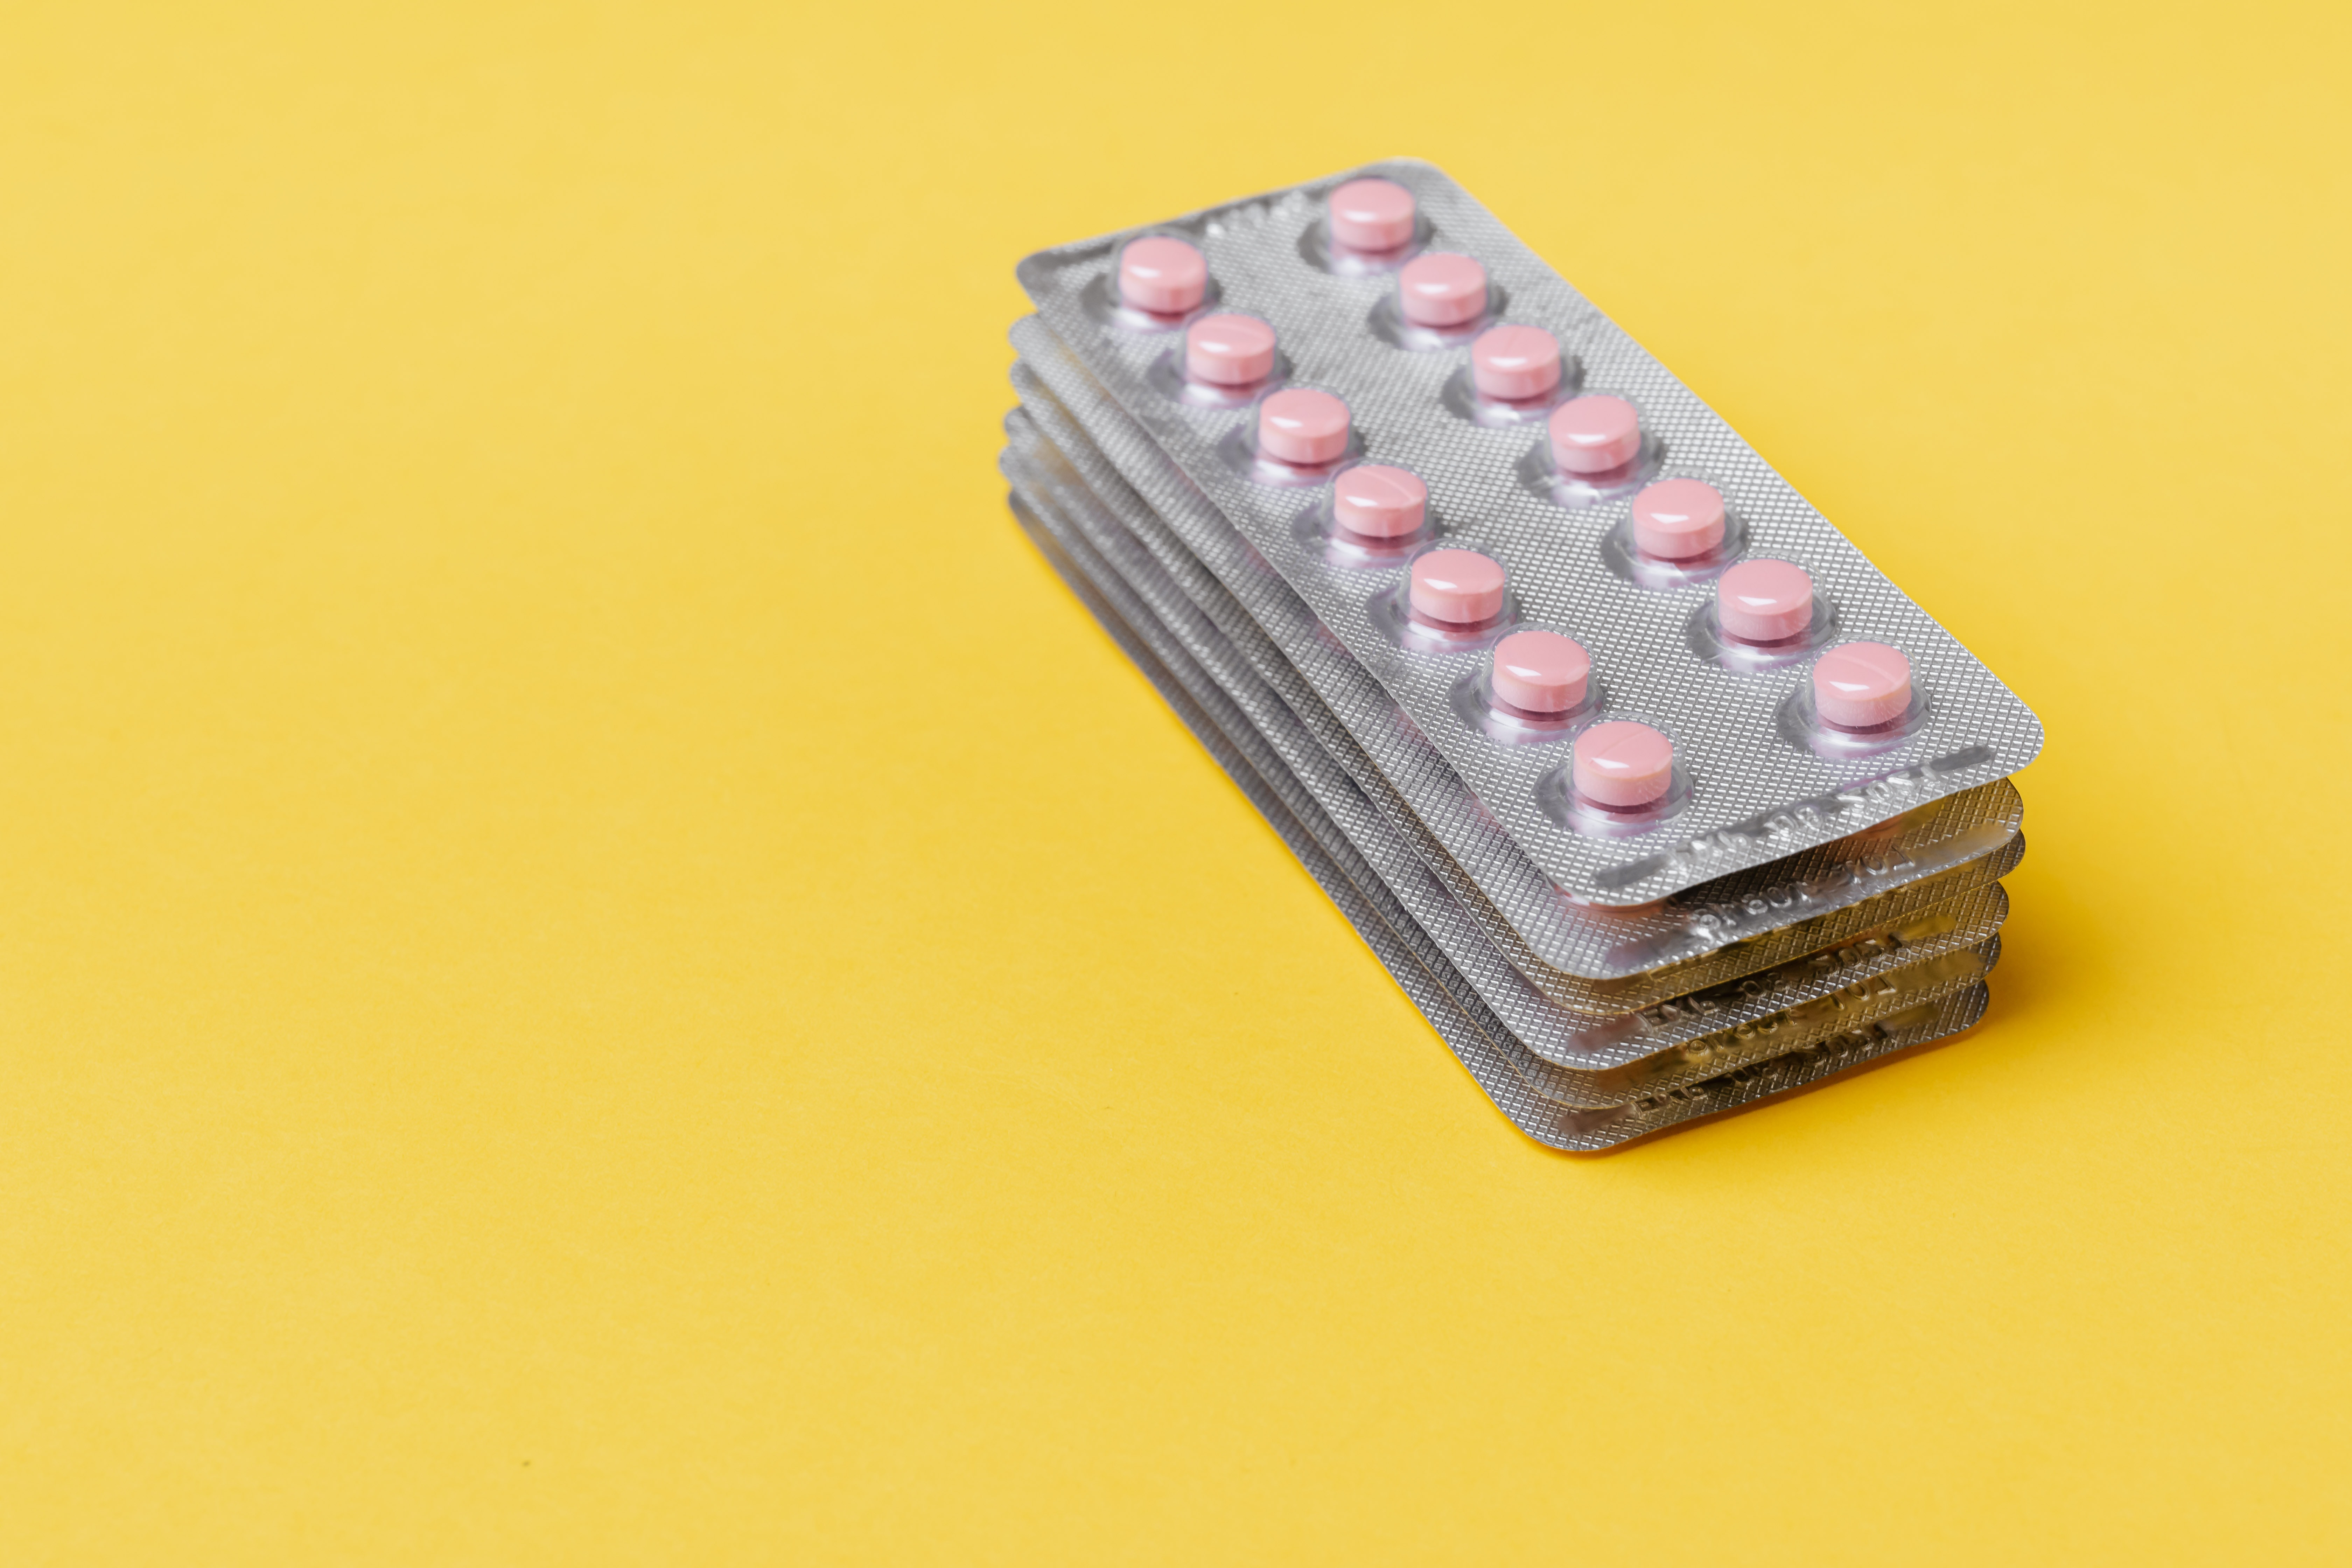 Mini-Pill Now Available Without Prescription in the UK